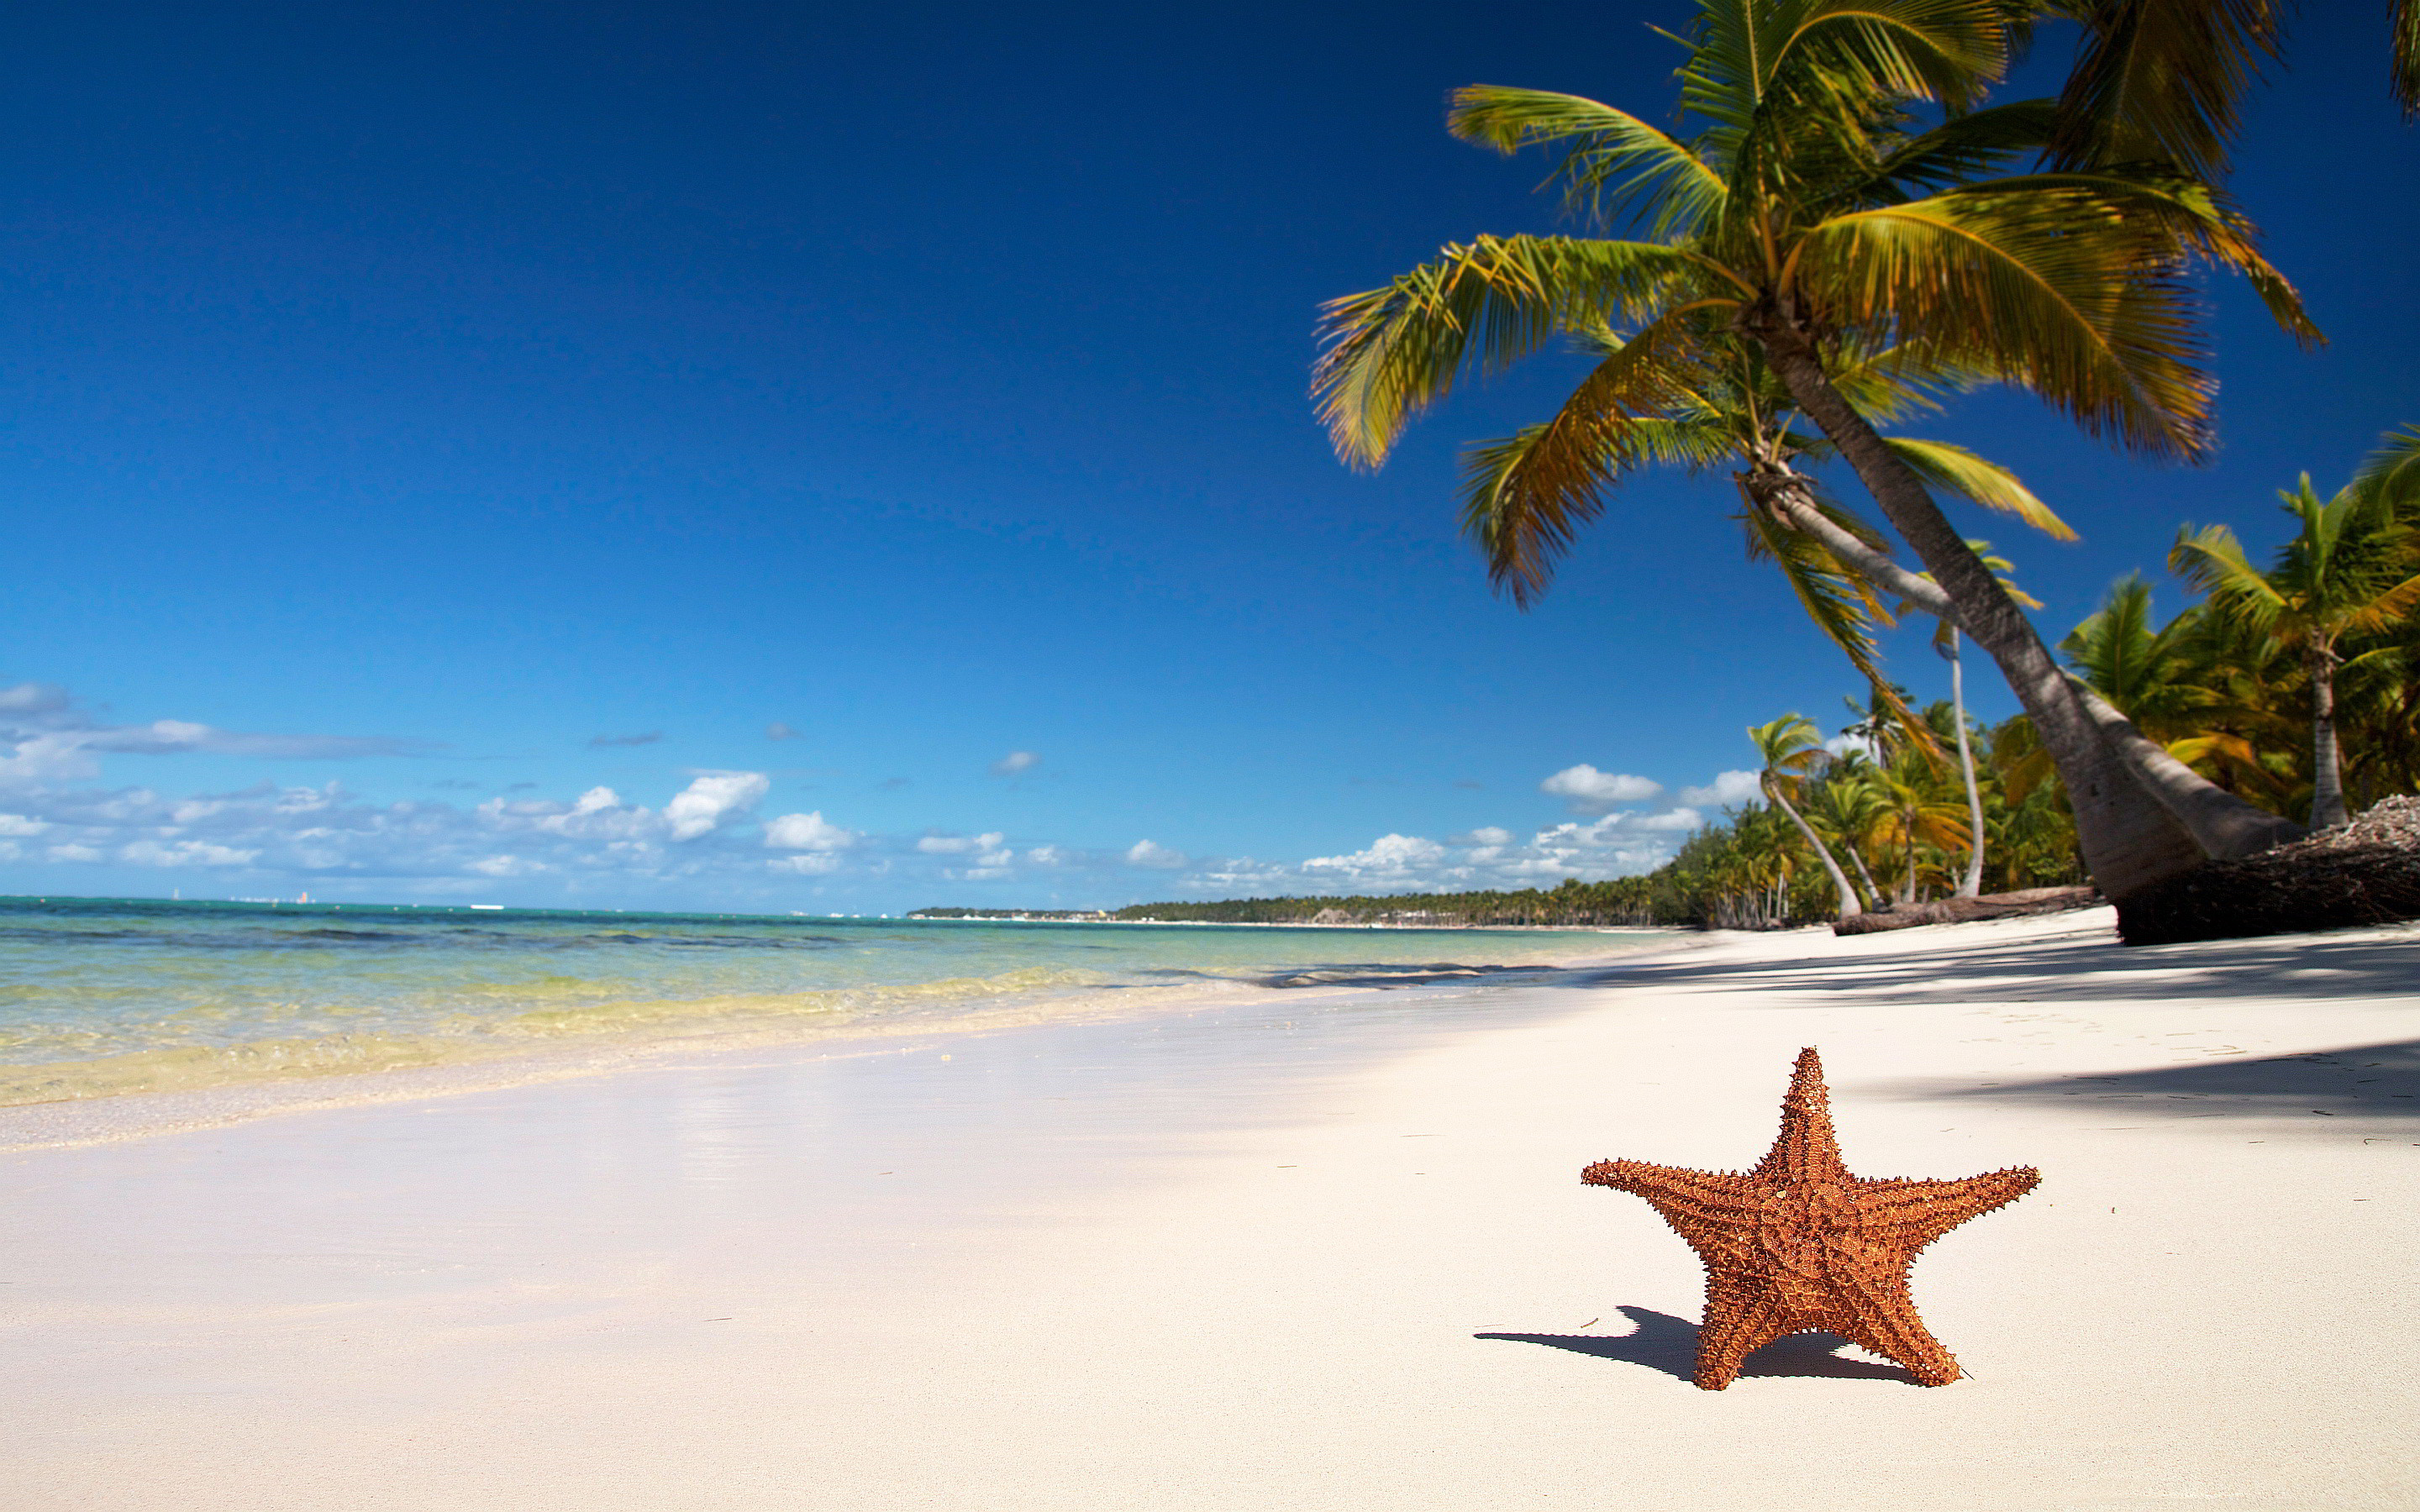 Hd Beach Backgrounds 74 Images